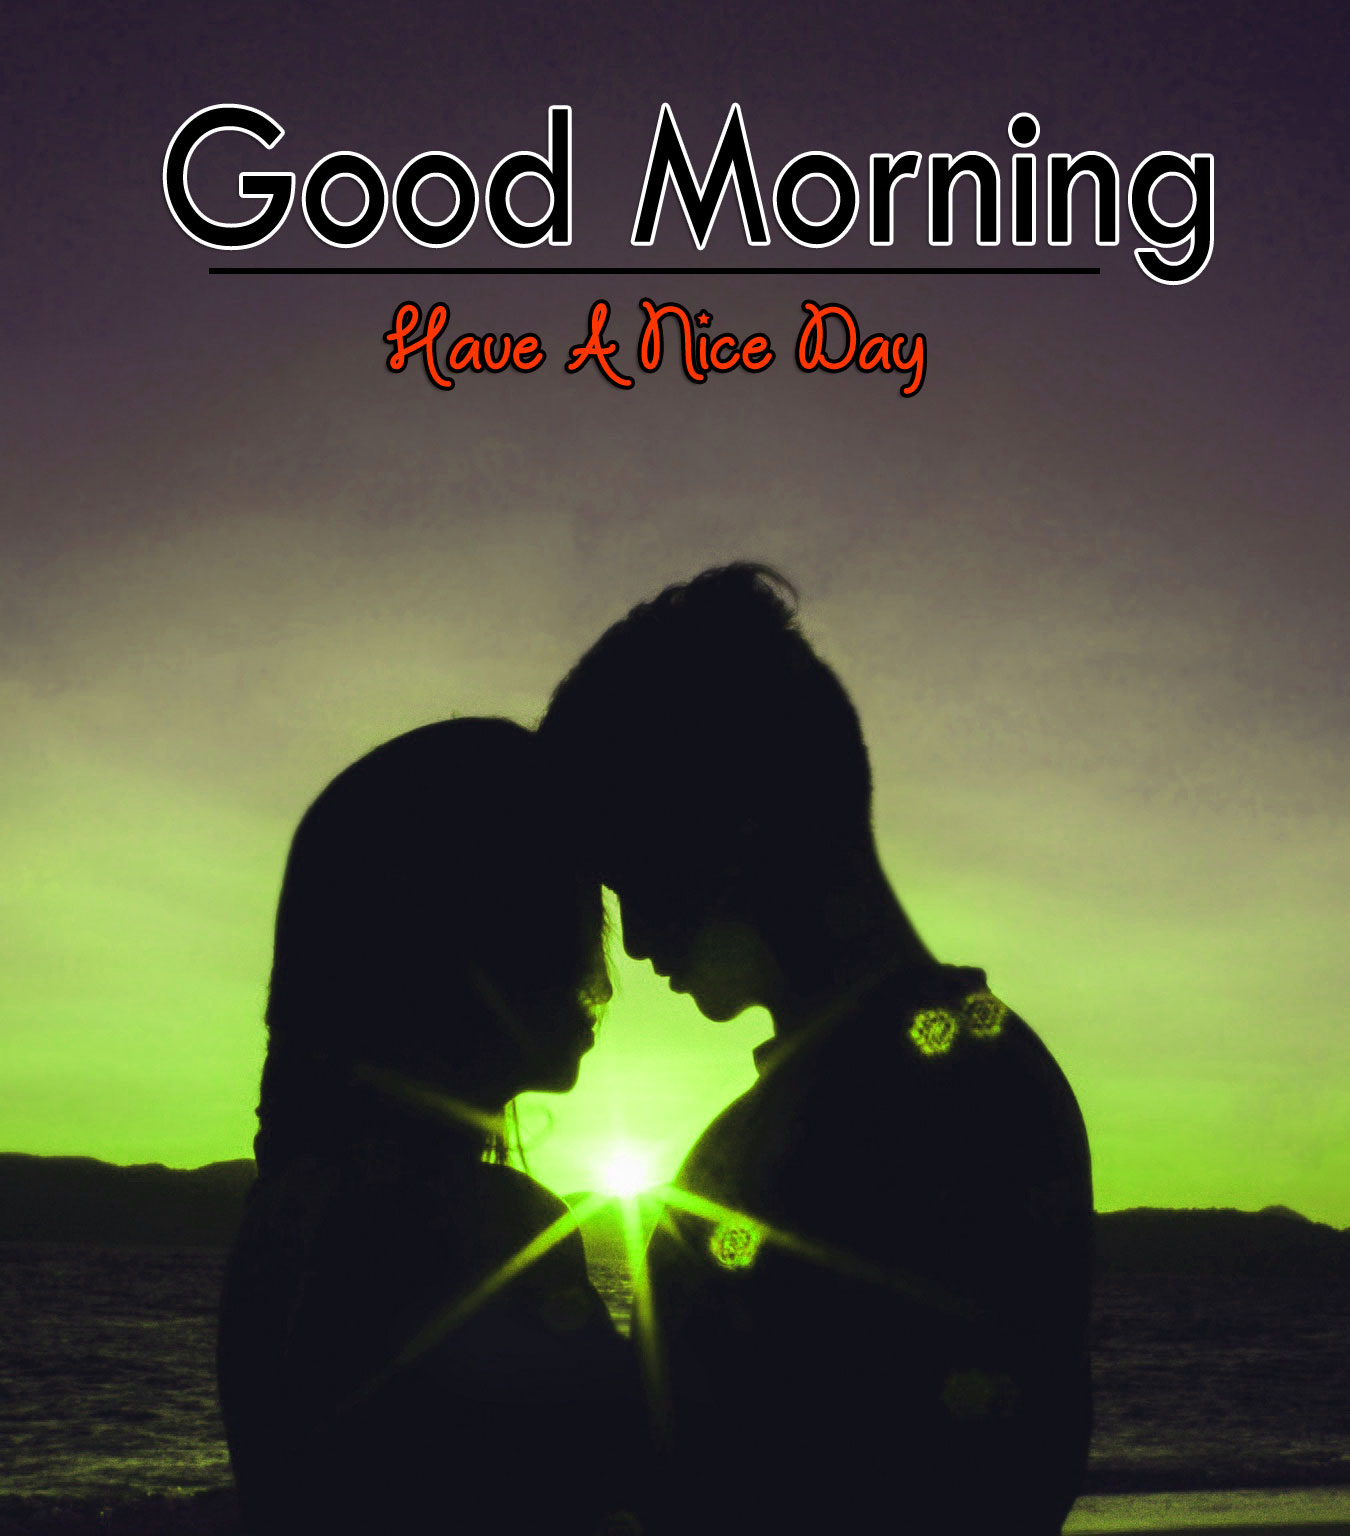 HD Romantic Good Morning Download Images